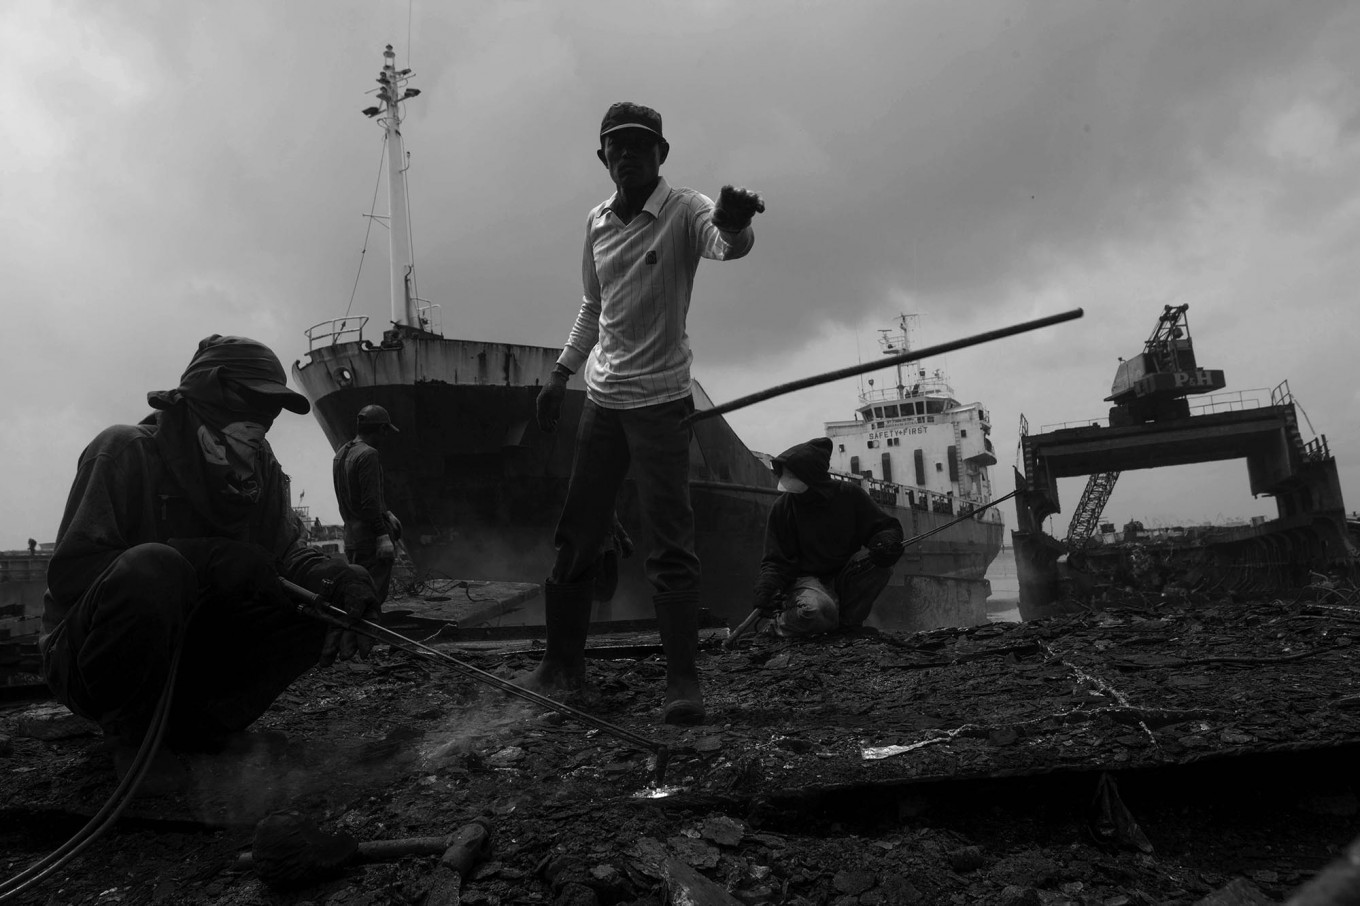 Workers collect all sizes of sheet metal, down to the smallest. JP/Sigit Pamungkas